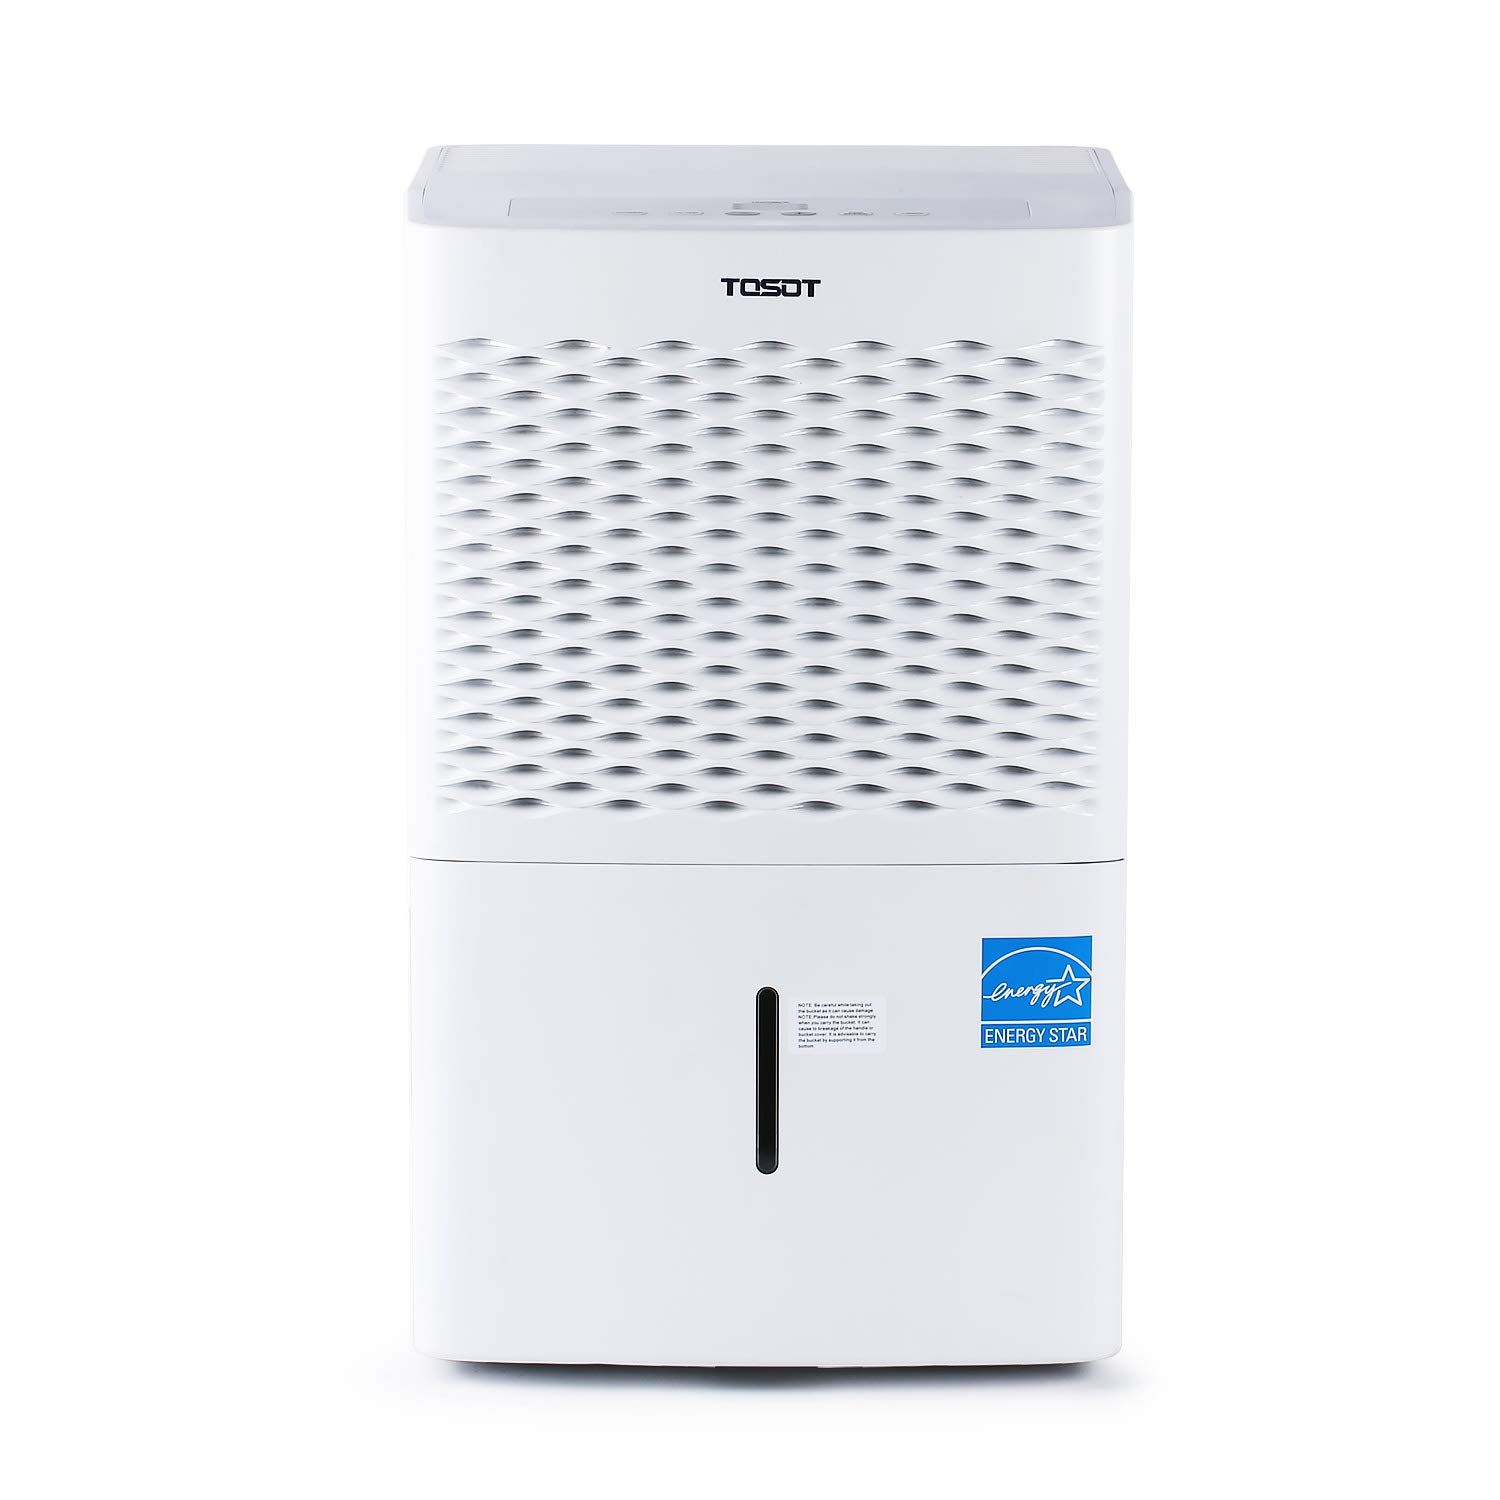 TOSOT 70 Pint Dehumidifier for Large Rooms up to 4500 Square Feet - Energy Star, Quiet, Portable with Wheels, and Continuous Drain Hose Outlet - Dehumidifiers for Home, Basement, Bedroom, Bathroom by TOSOT